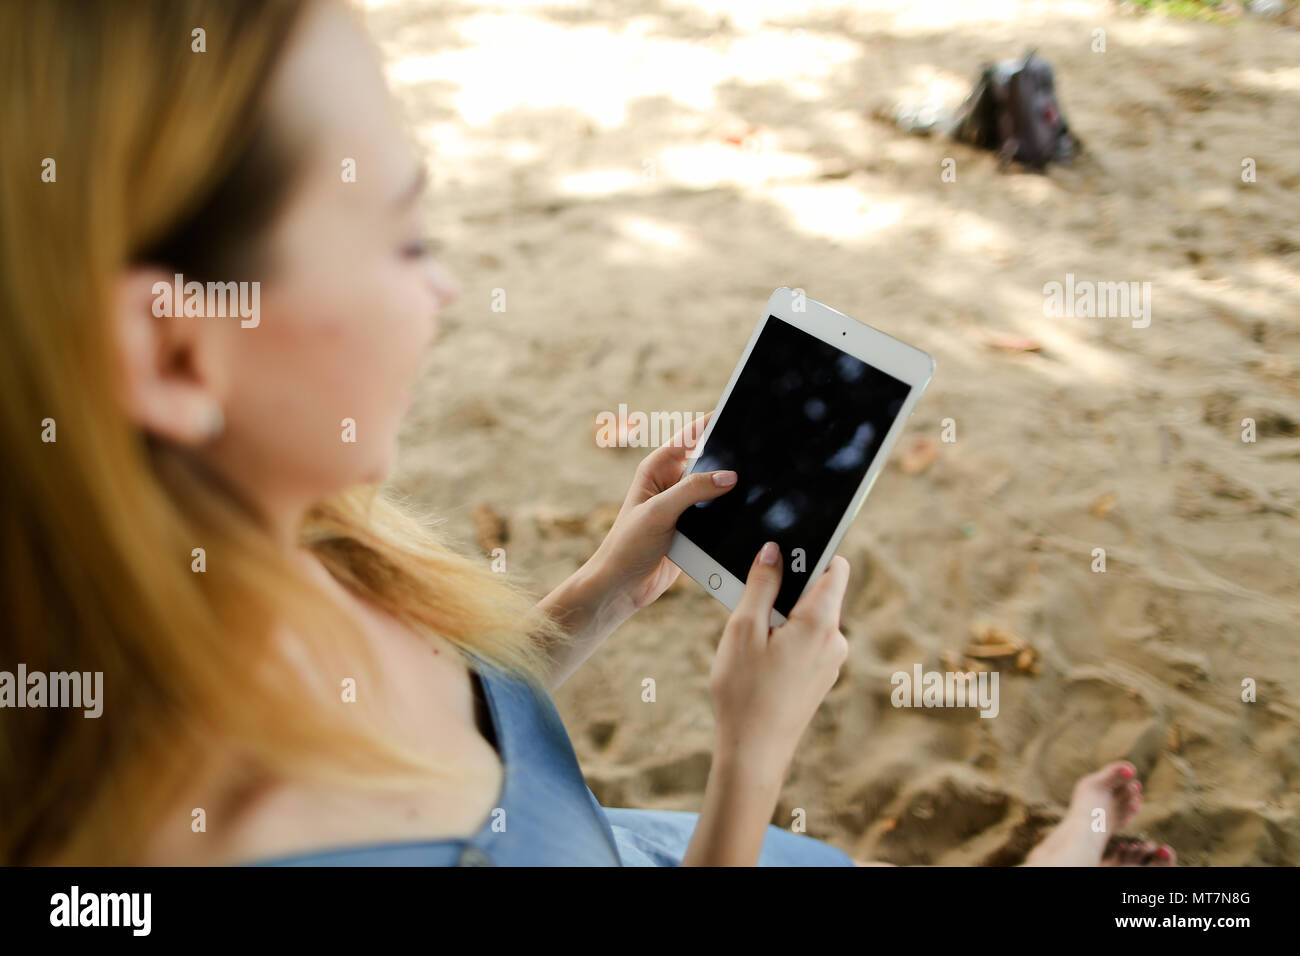 Young woman using tablet in sand background. - Stock Image